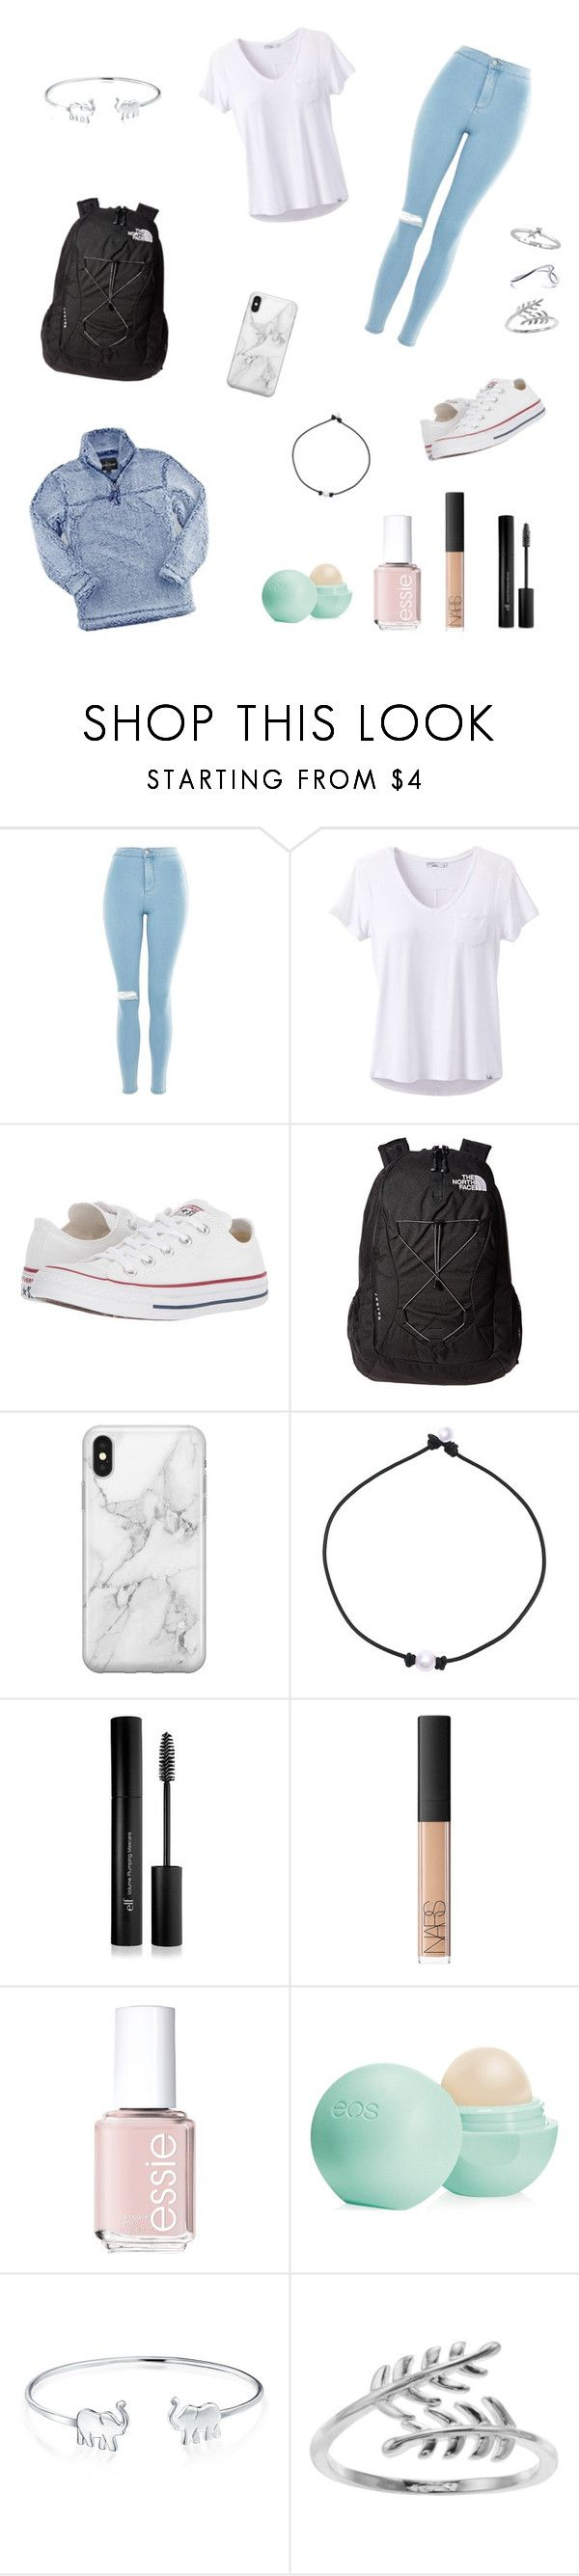 """preppy"" by riapanneer on Polyvore featuring Topshop, Boxercraft, prAna, Converse, The North Face, Recover, Forever 21, NARS Cosmetics, Essie and Eos"